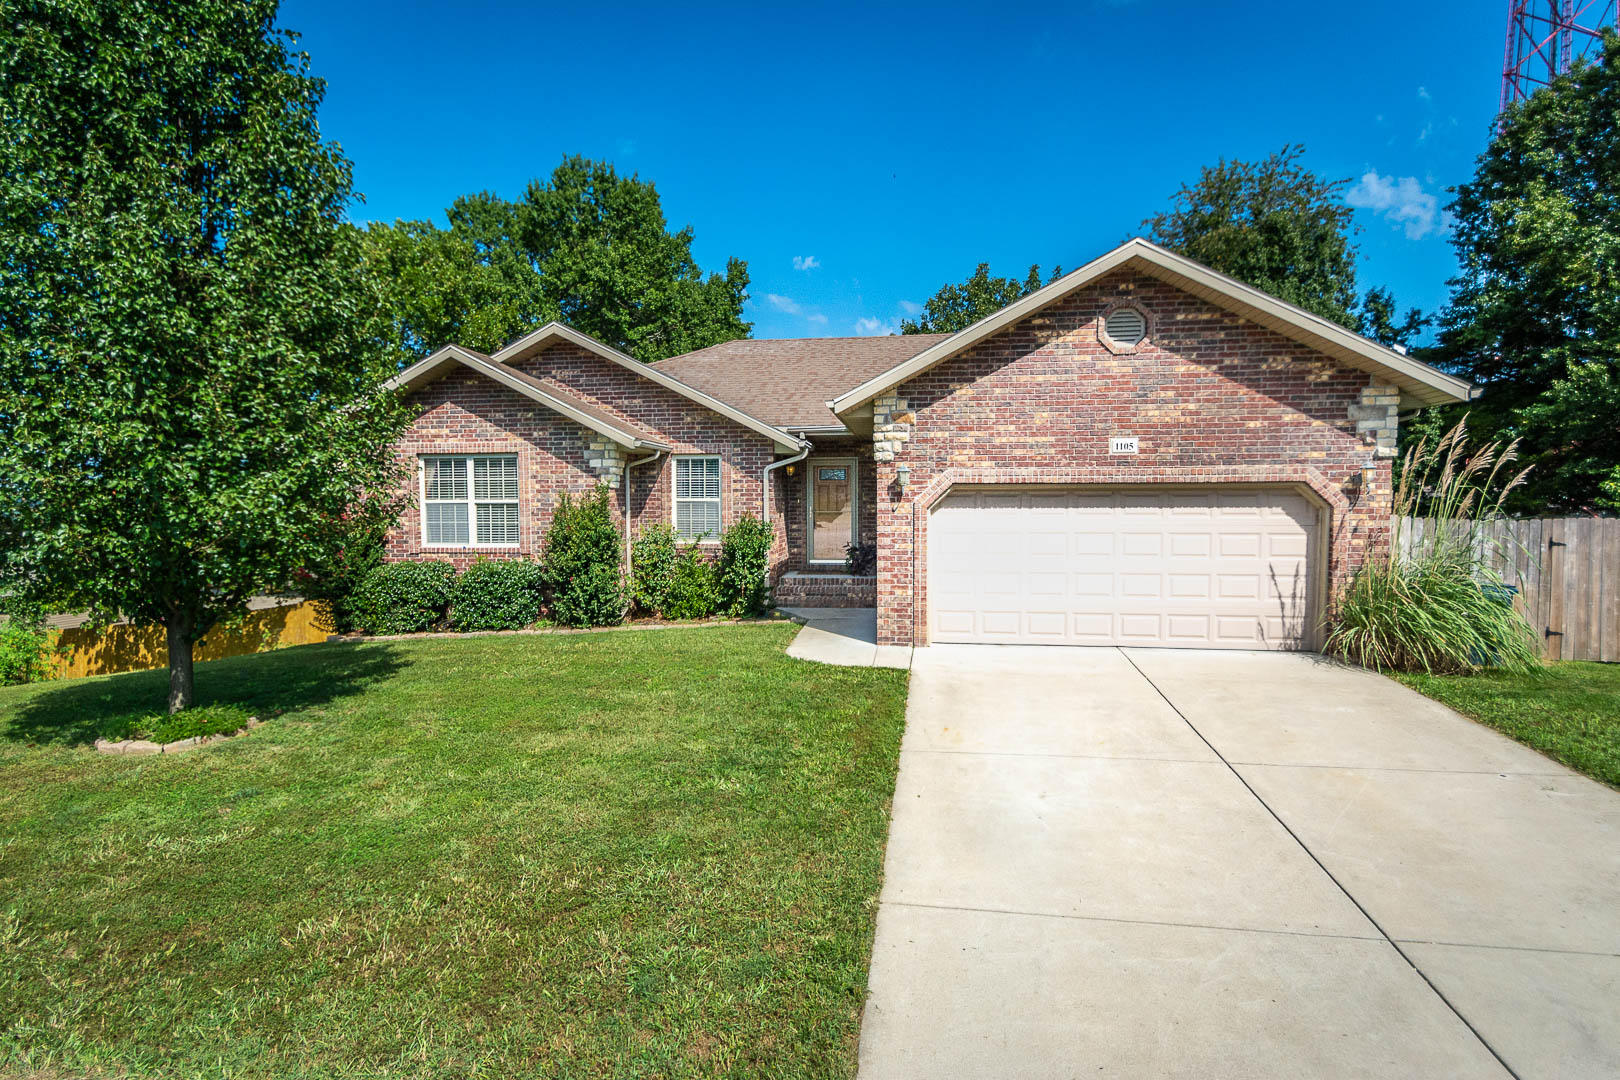 1105 West Chase Court Ozark, MO 65721